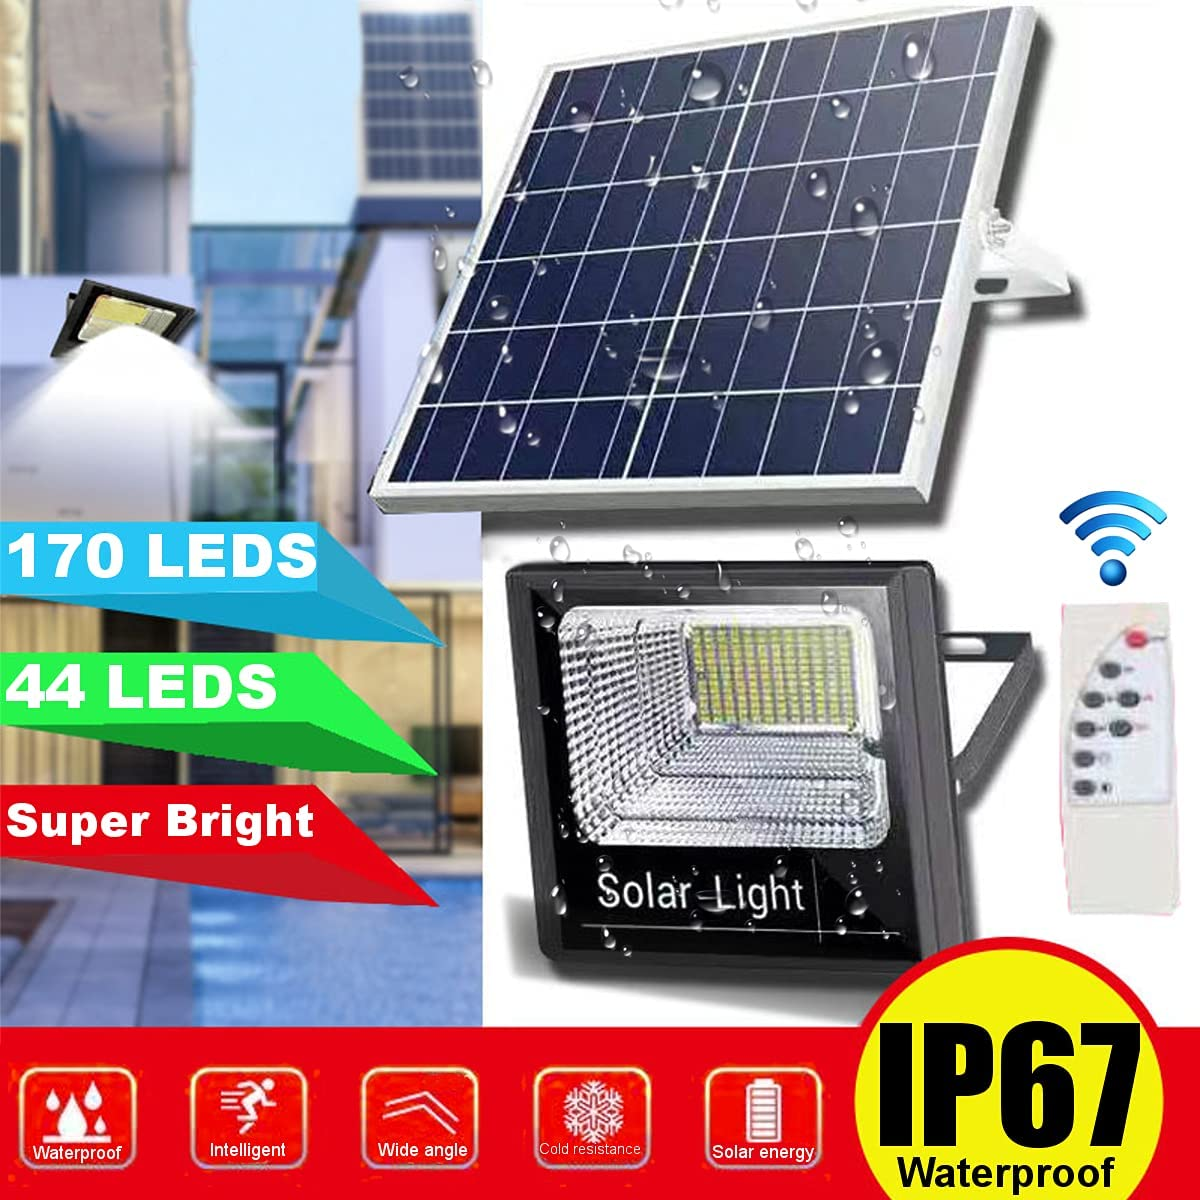 super bright 24 leds solar panel street light led on the wall waterproof outdoor lighting solar panel lamp with 4000ma battery Solar Led Light Ourdoor Waterproof Garden Lamps on Solar Energy Panel Powelful Outdoor Solar Lamp IP67 Outdoor Garden Lighting